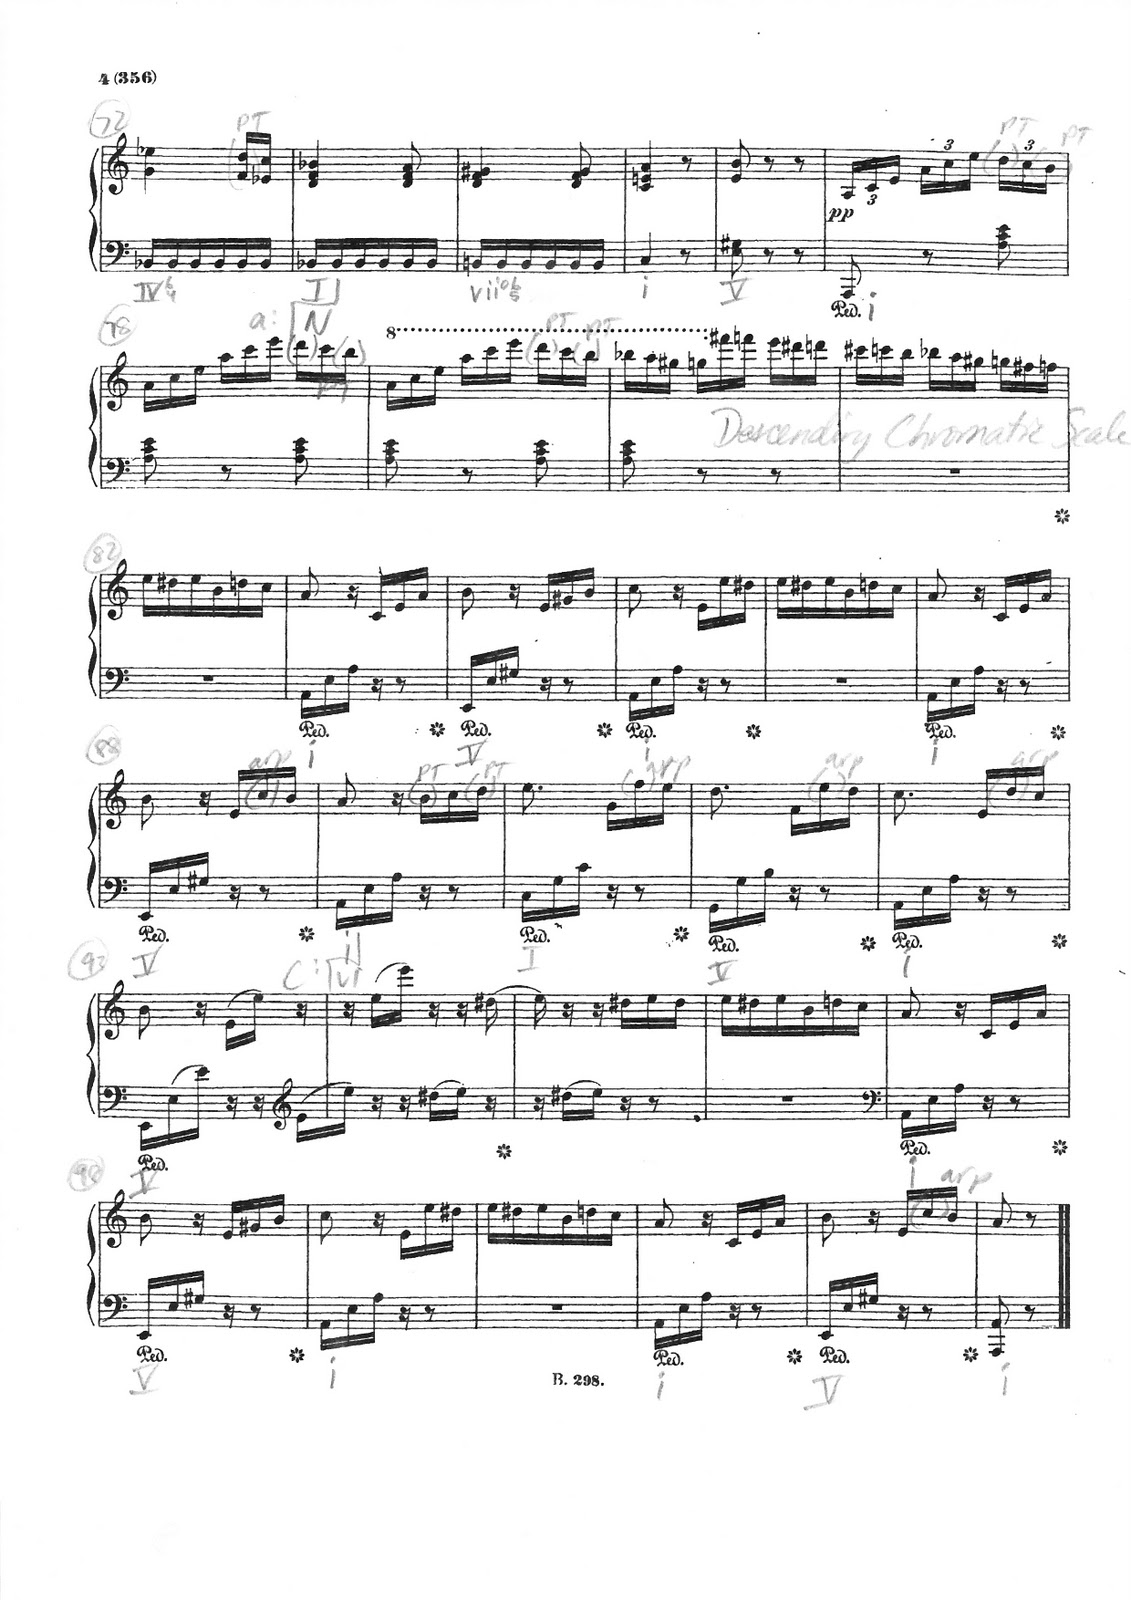 fur elise analysis Reconstructing beethoven's fur elise (25 studies in beethoven's bagatelle in a minor) consists of 25 studies that'll give you the required theoretical and technical skills to perform the famous fur elise, a bagatelle in a minor by l van beethoven.